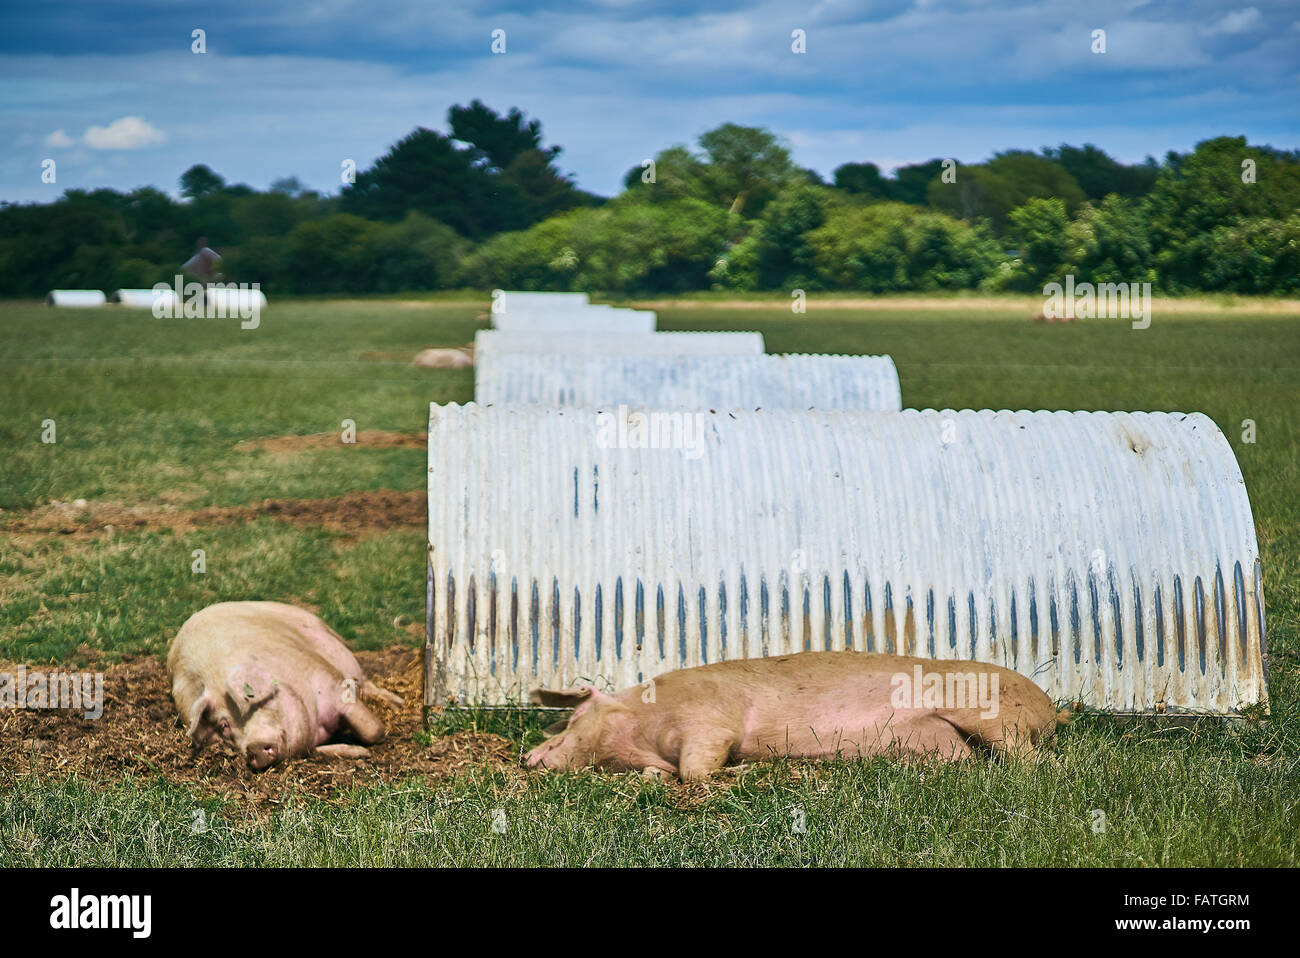 Free Range Organic Pig Farm with pig shelters - Stock Image